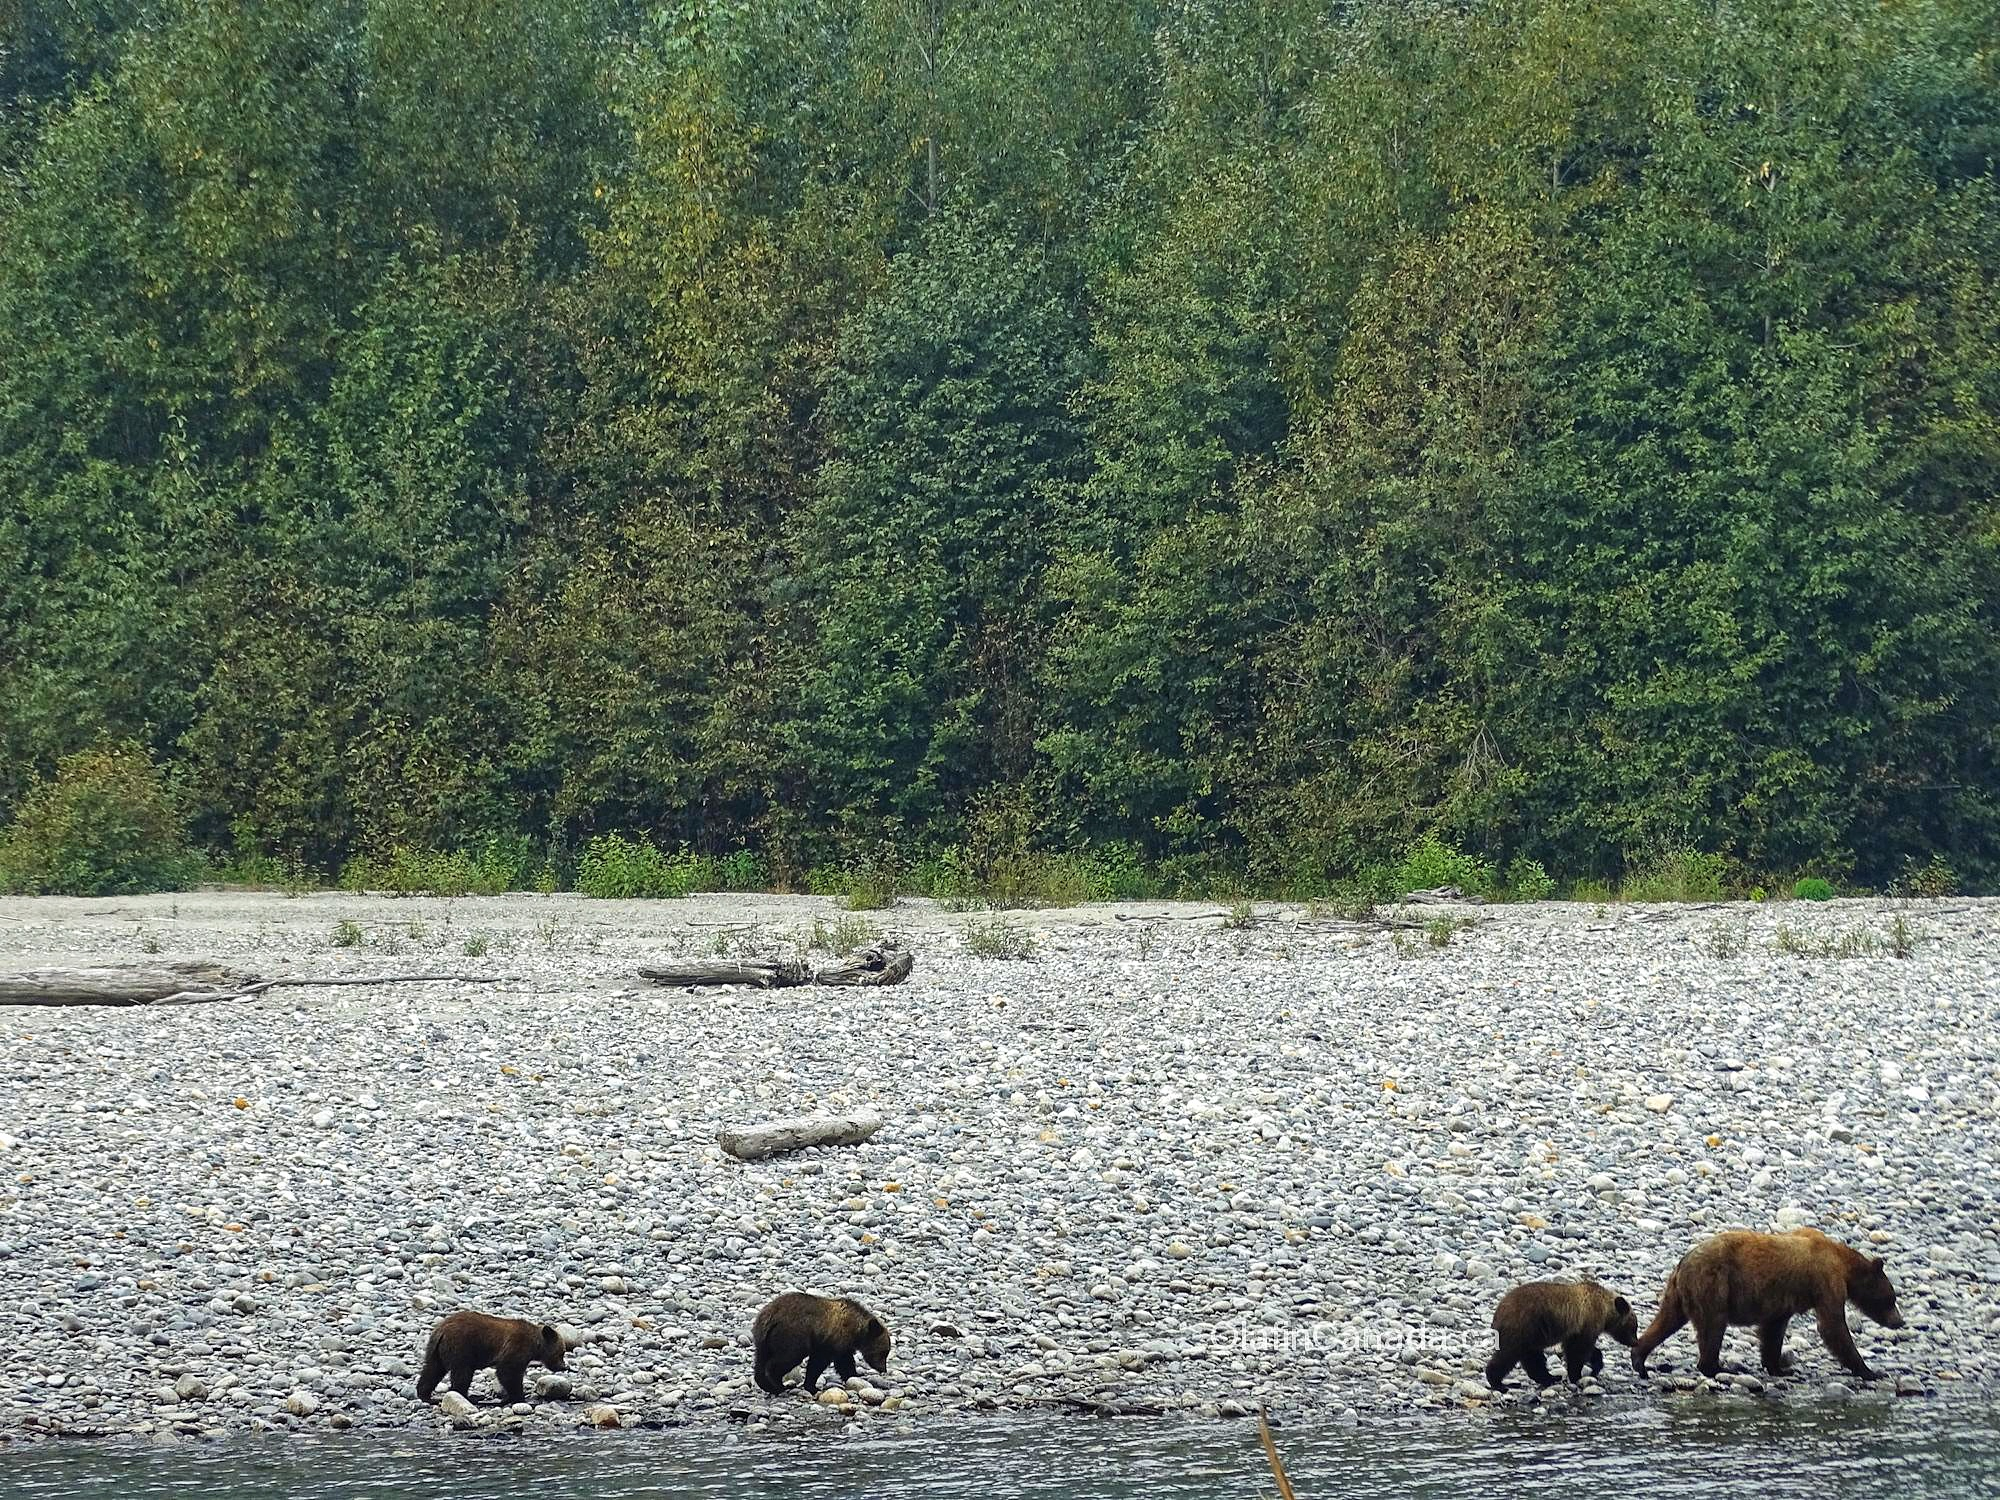 Grizzly family alongside Homathco River in Bute Inlet #olafincanada #britishcolumbia #discoverbc #buteinlet #wildlife #grizzlybear